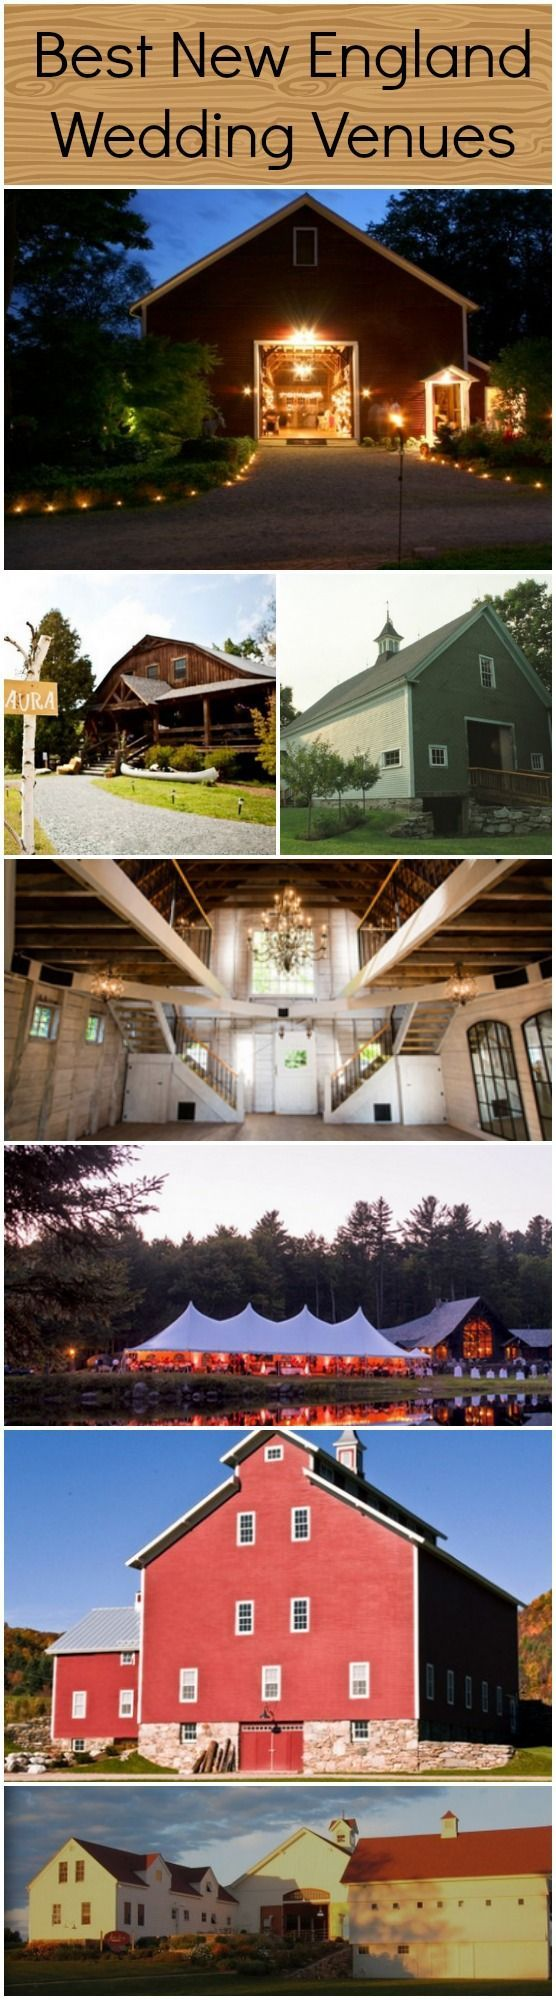 new england wedding venues on budget%0A     best Wedding Venues images on Pinterest   Wedding venues  Banquet and  Curtains